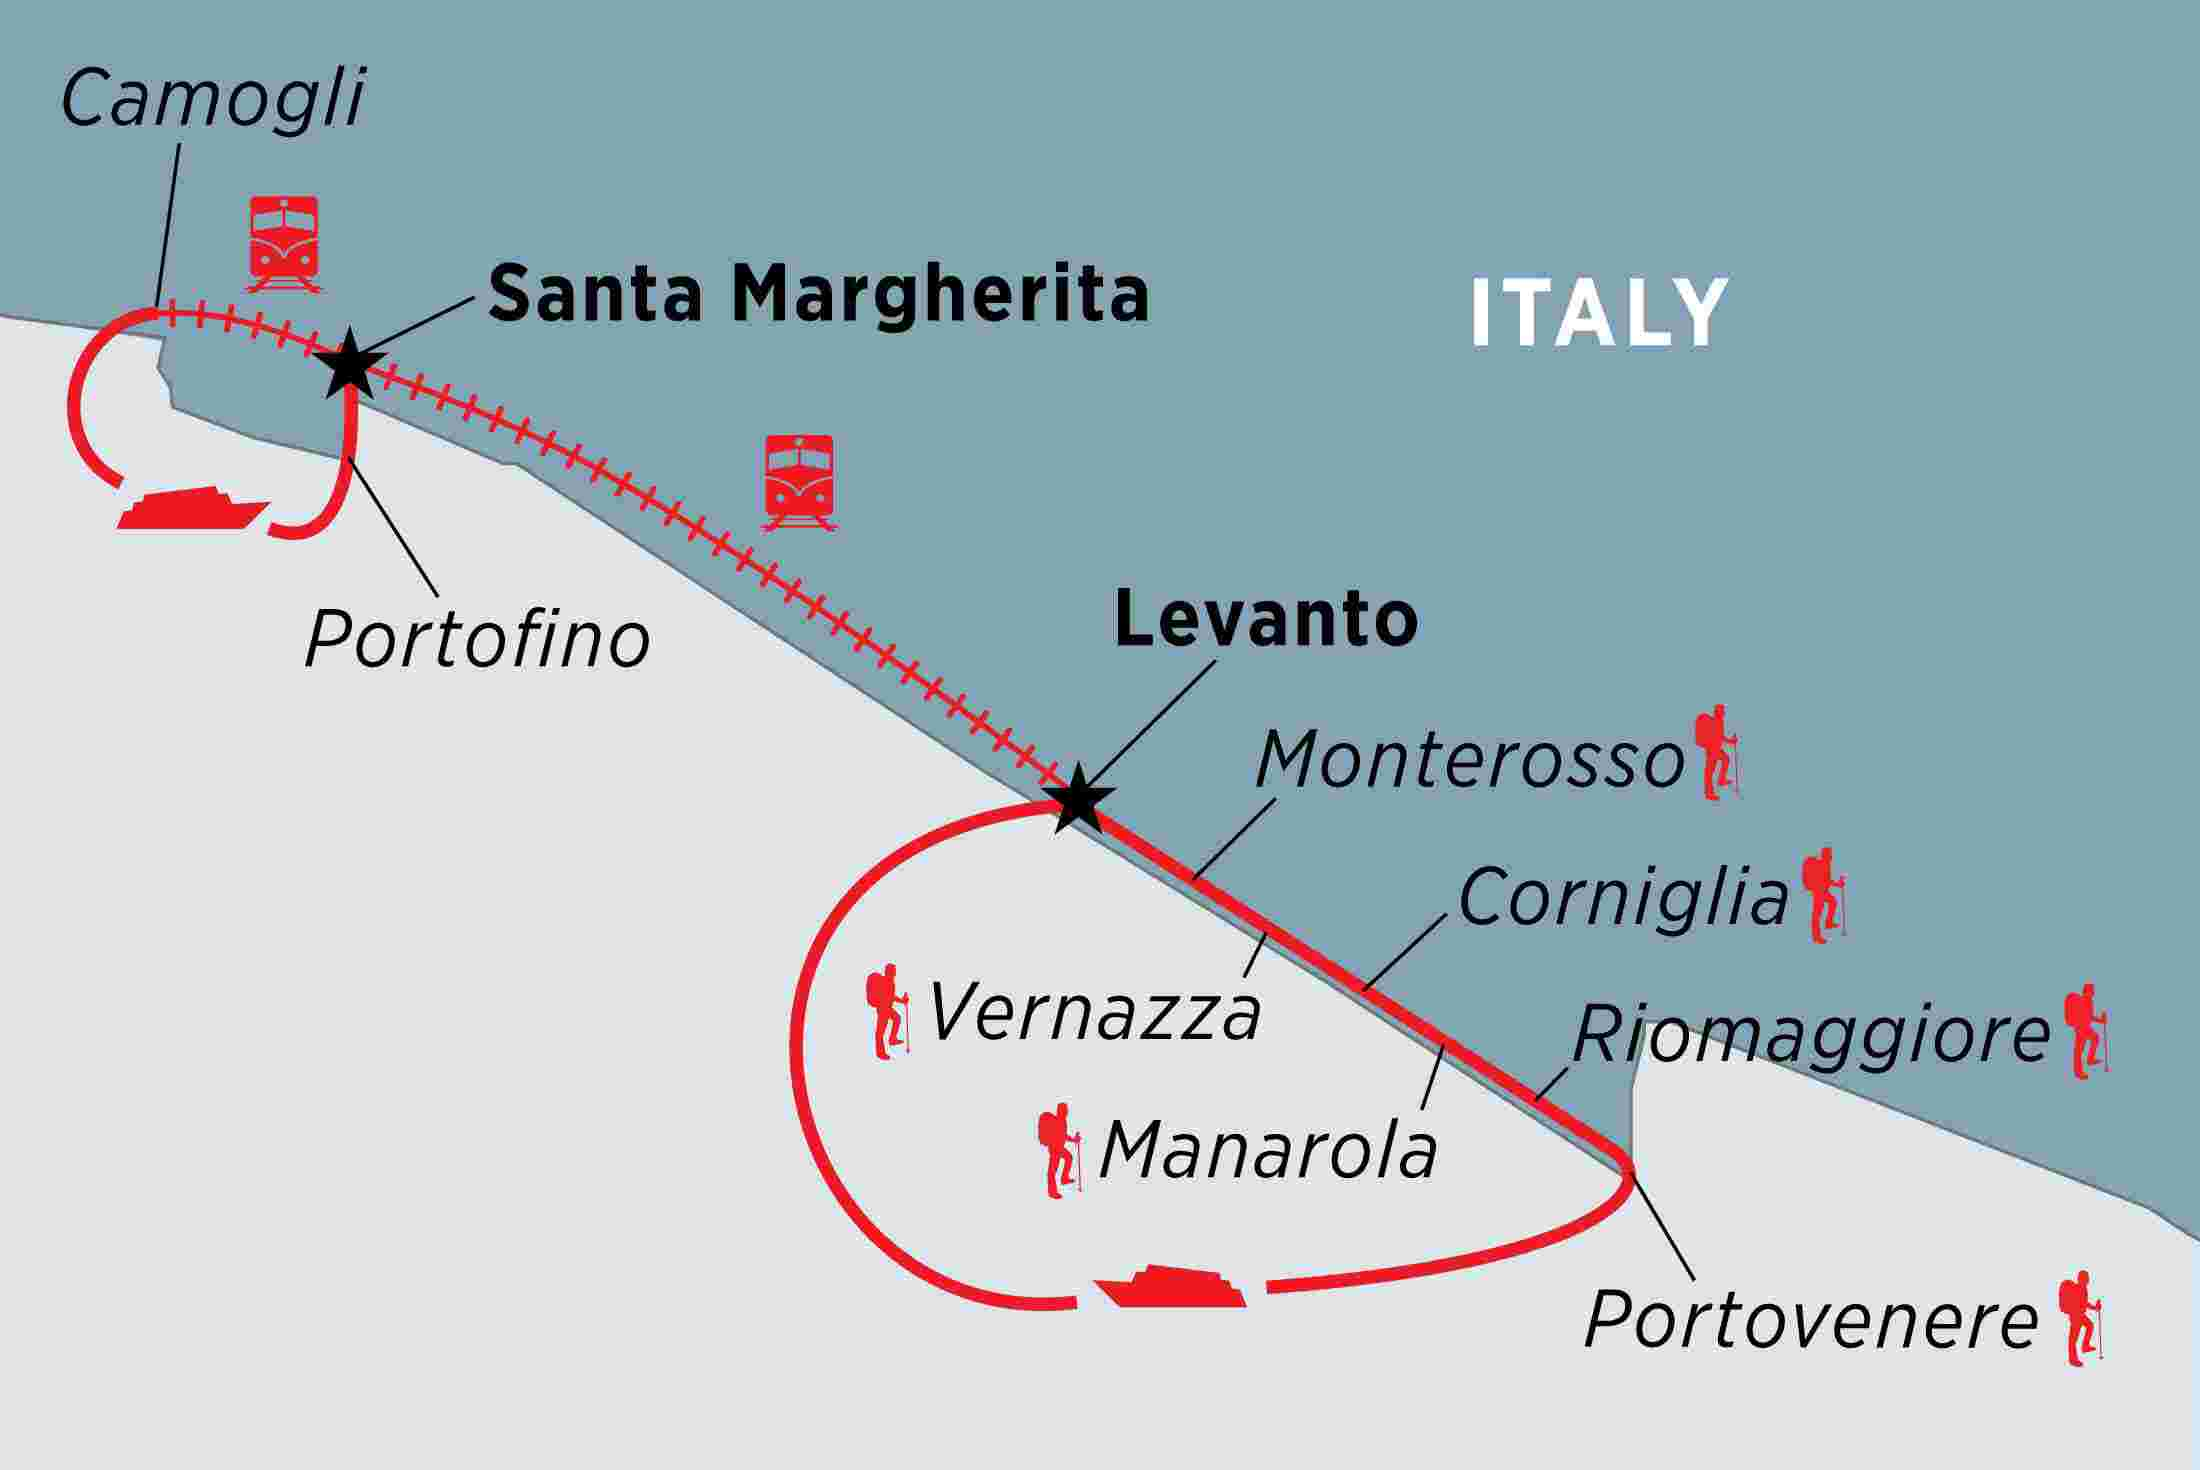 Walking in Italy: The Cinque Terre overview | Walking in Italy: The on san gimignano map, aeolian islands map, siena map, la spezia map, liguria map, manarola map, vernazza map, venice map, monterosso al mare, italy map, florence map, italian riviera map, san gimignano, lucca map, pisa map, la spezia, capri map, amalfi coast map, tuscany map, genoa map, italian riviera, positano map, portofino map, pietrasanta map,